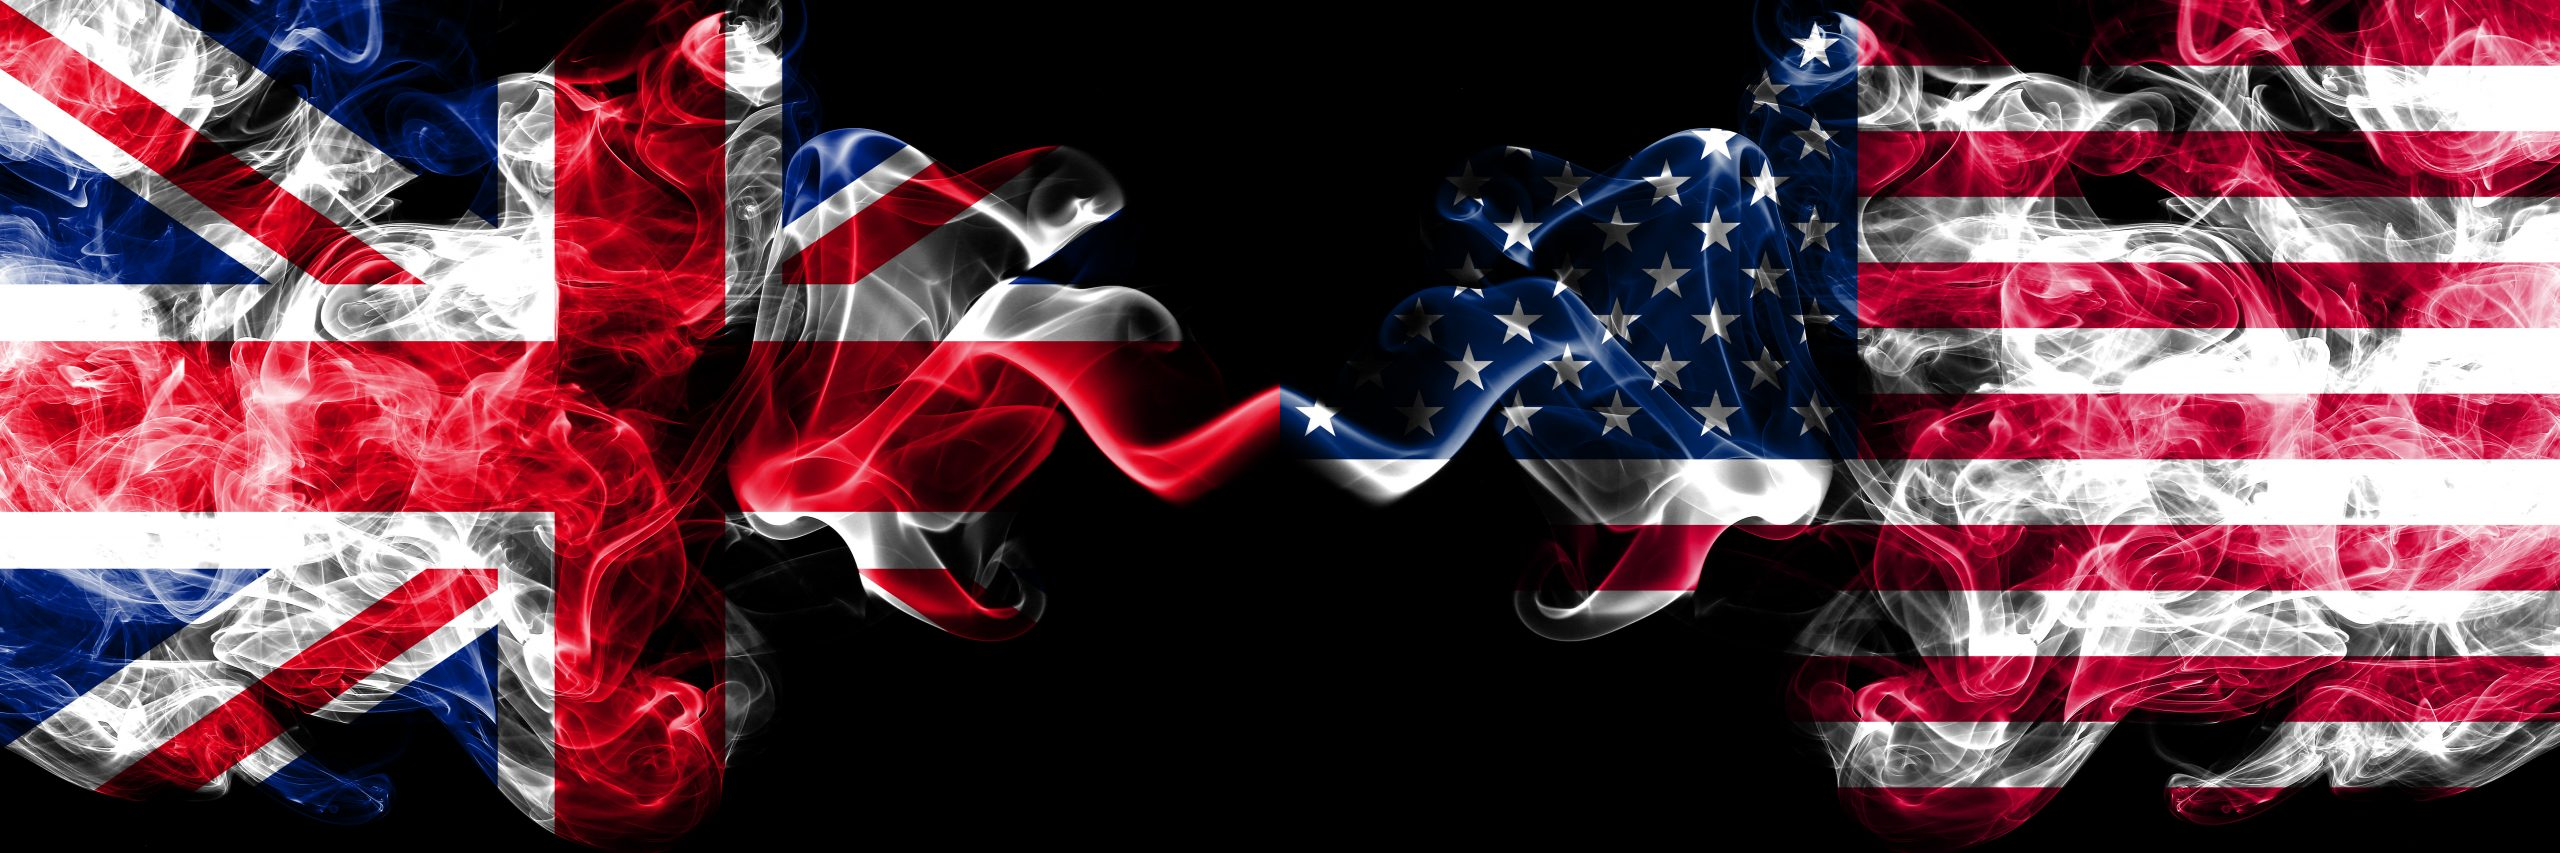 UK and US flags smoke between them